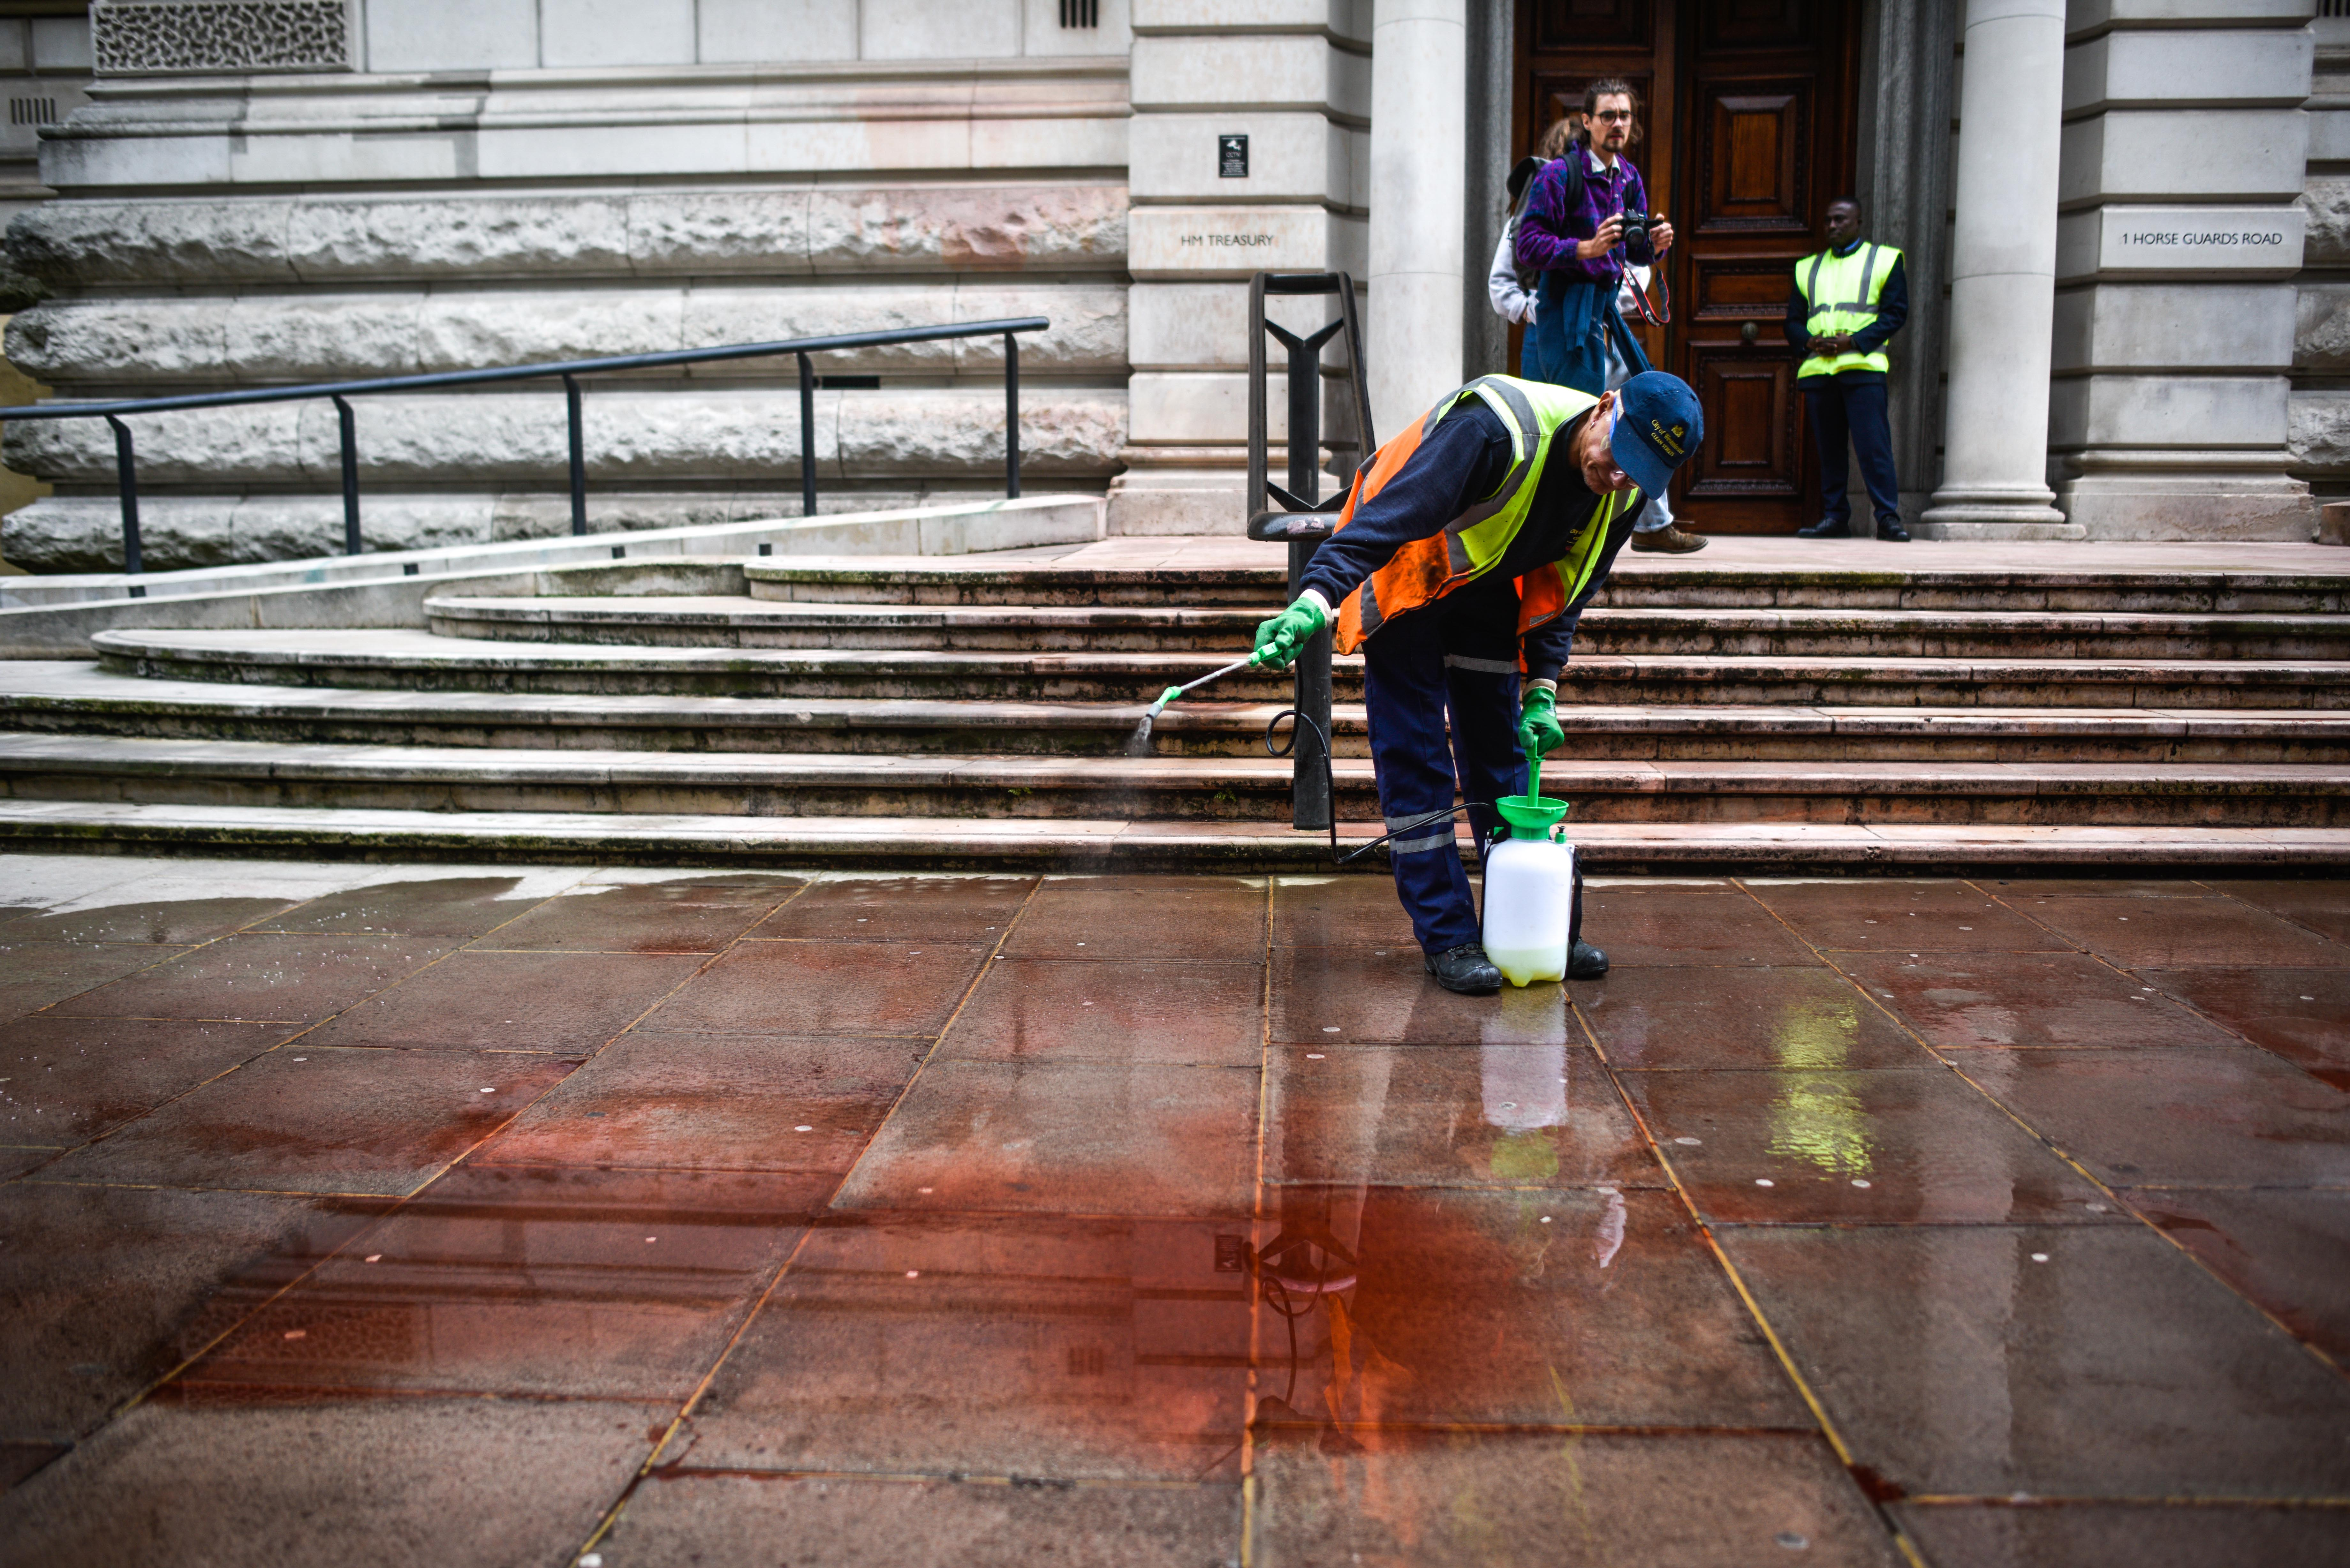 LONDON, ENGLAND - OCTOBER 03: A street worker cleans fake blood from outside the Treasury building on October 3, 2019 in London, England. Climate change activists from the group Extinction Rebellion used a fire engine in an attempt to spray the Treasury building. (Photo by Peter Summers/Getty Images)